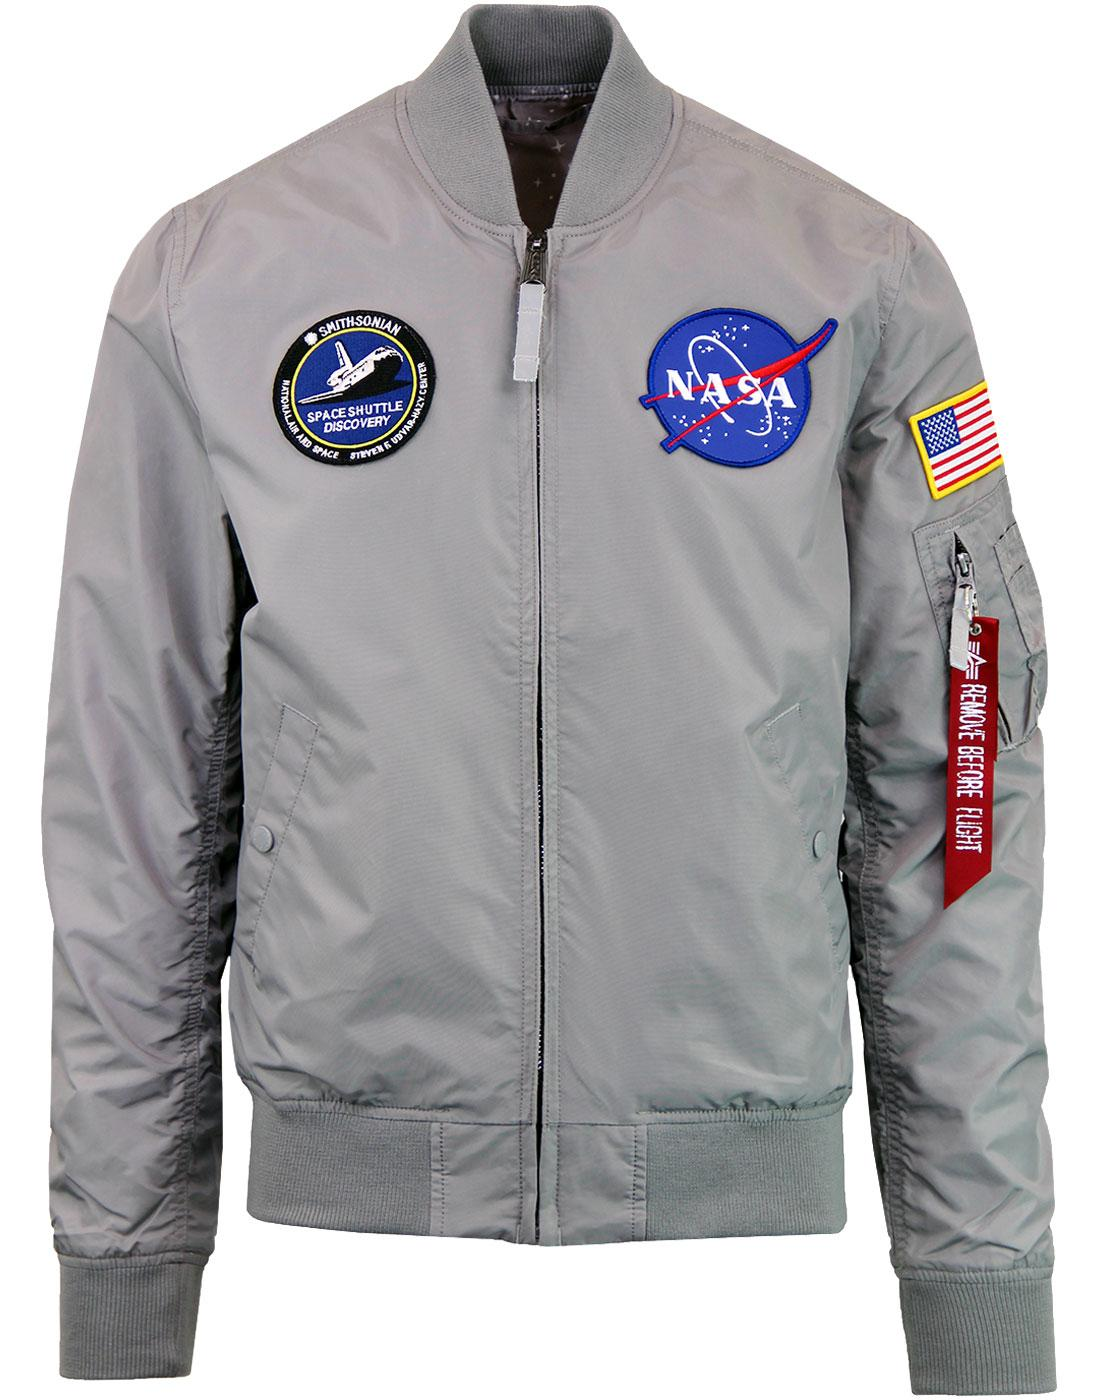 ALPHA INDUSTRIES 2-in-1 MA-1 TT NASA Bomber Jacket